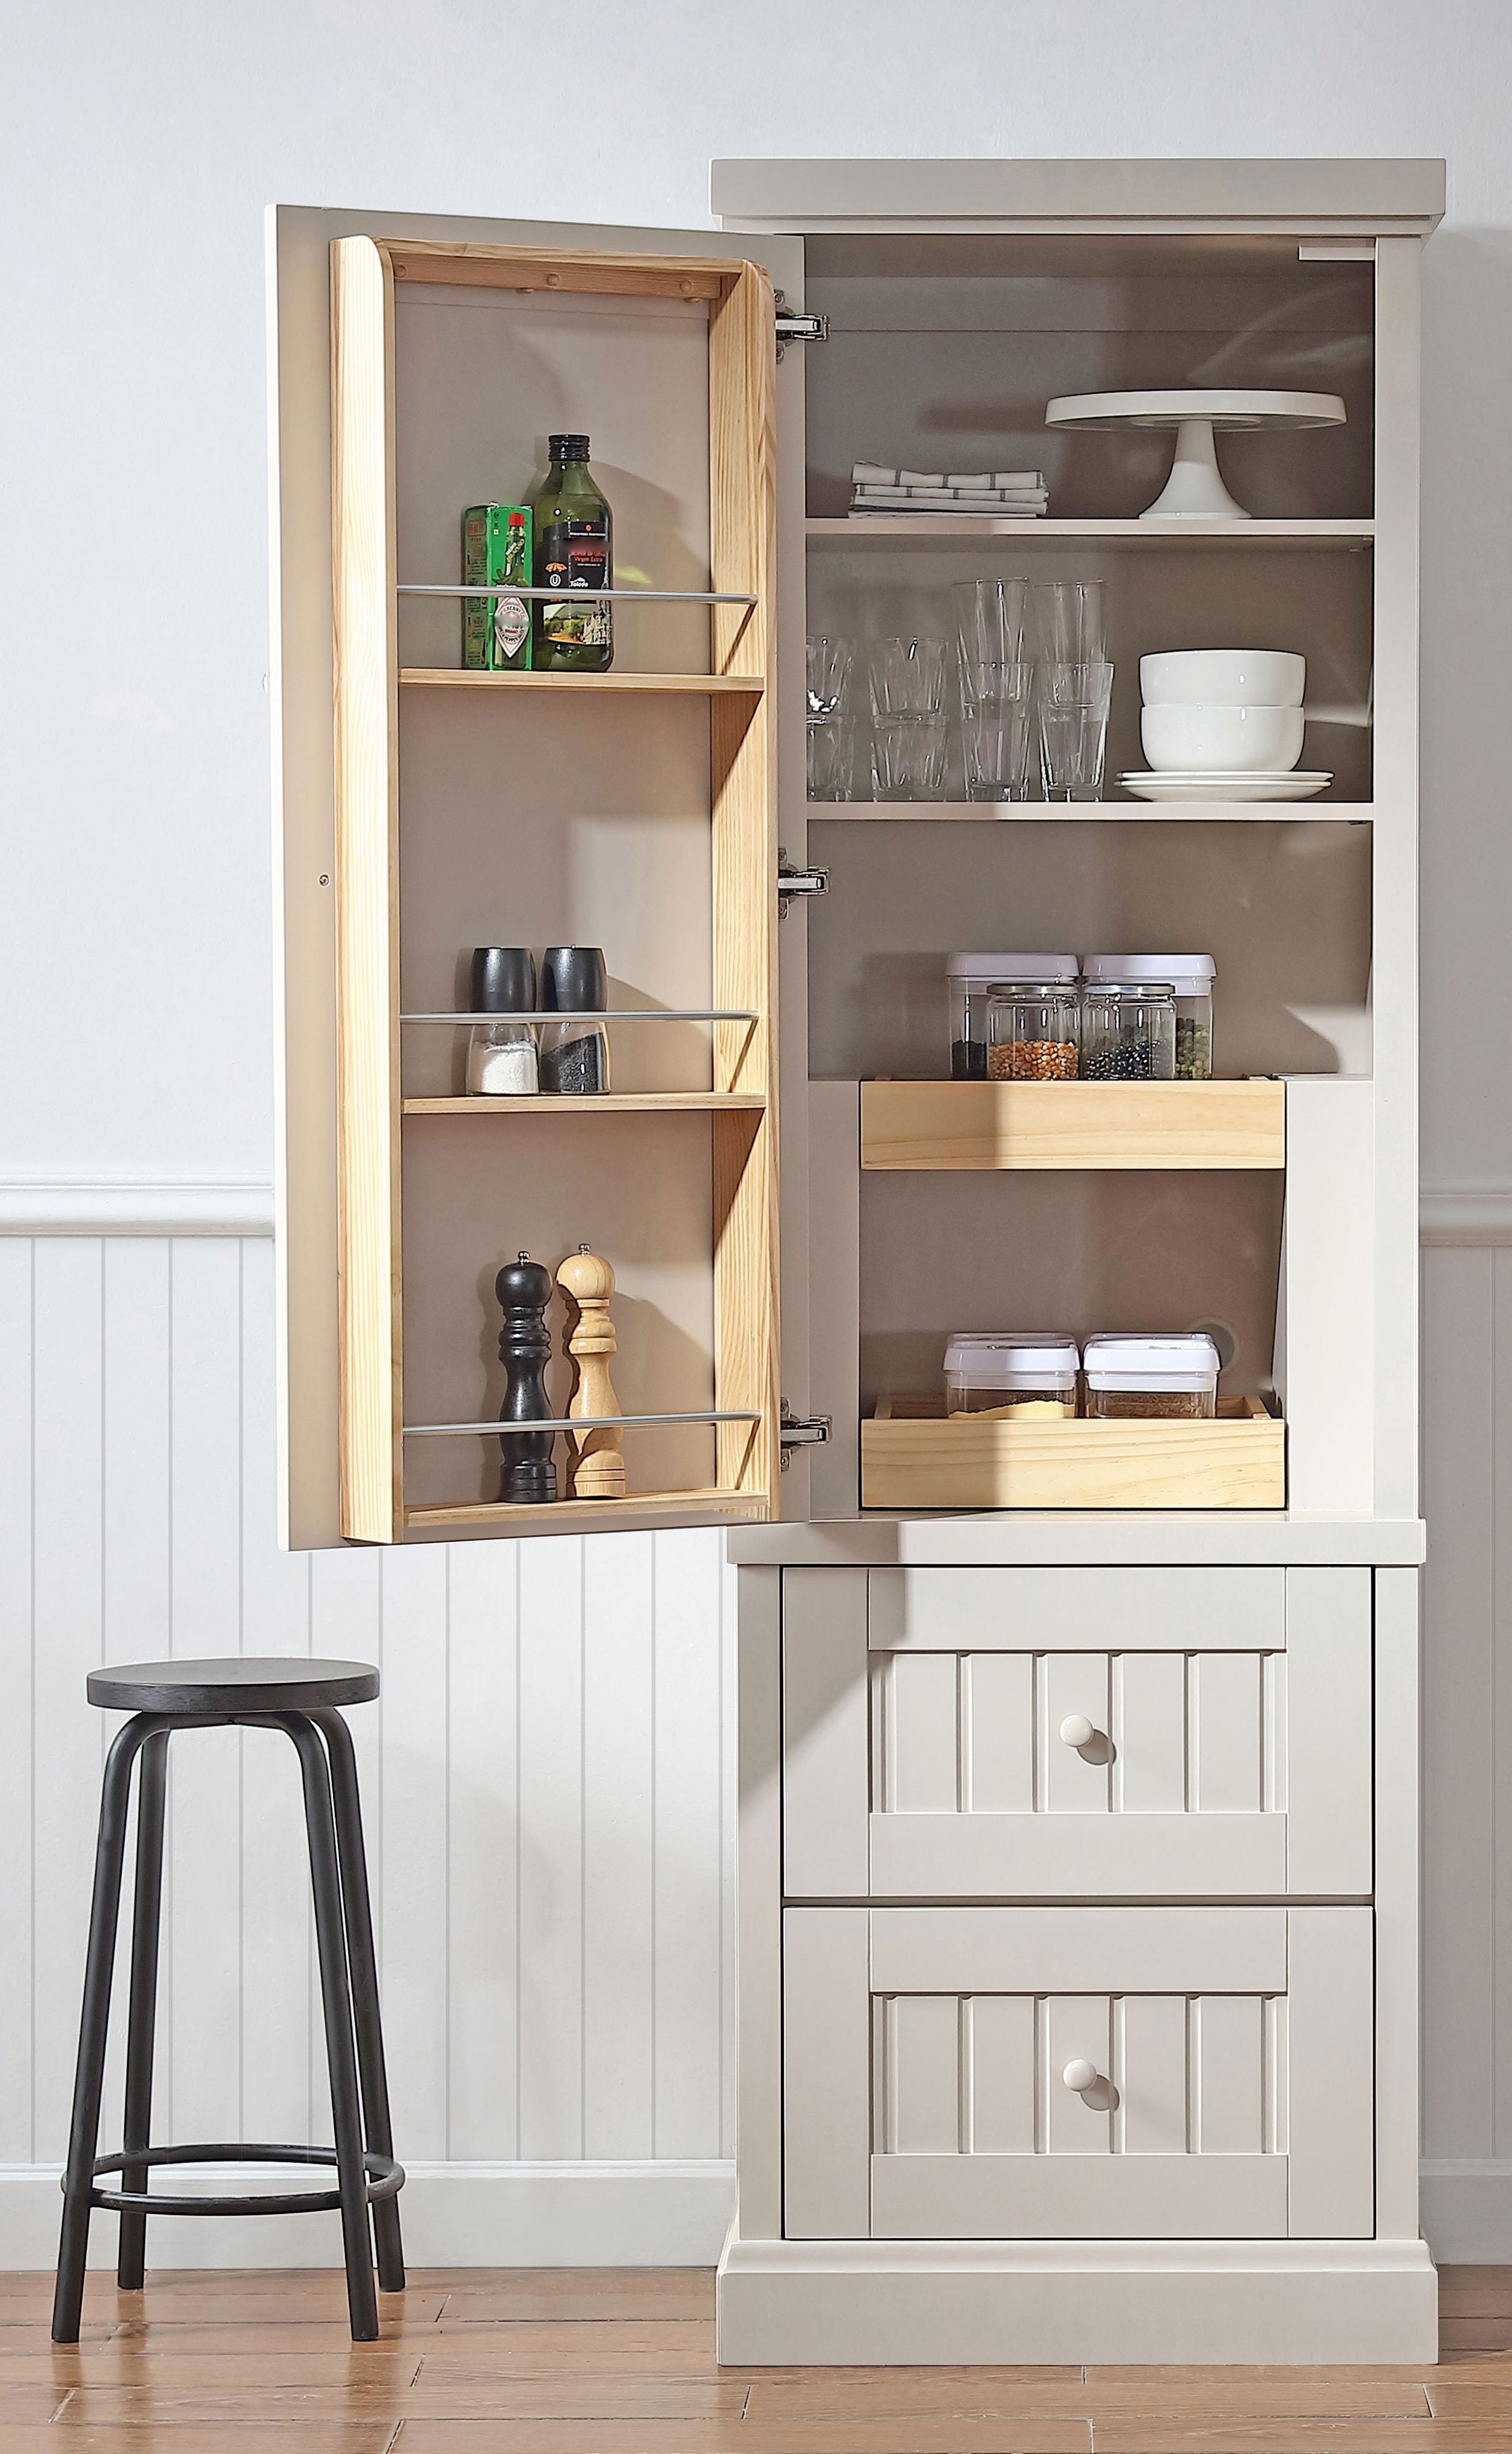 Space in the kitchen by adding shelves and glass canisters with seals - In Need Of Extra Storage Space But Don T Want To Completely Renovate Your